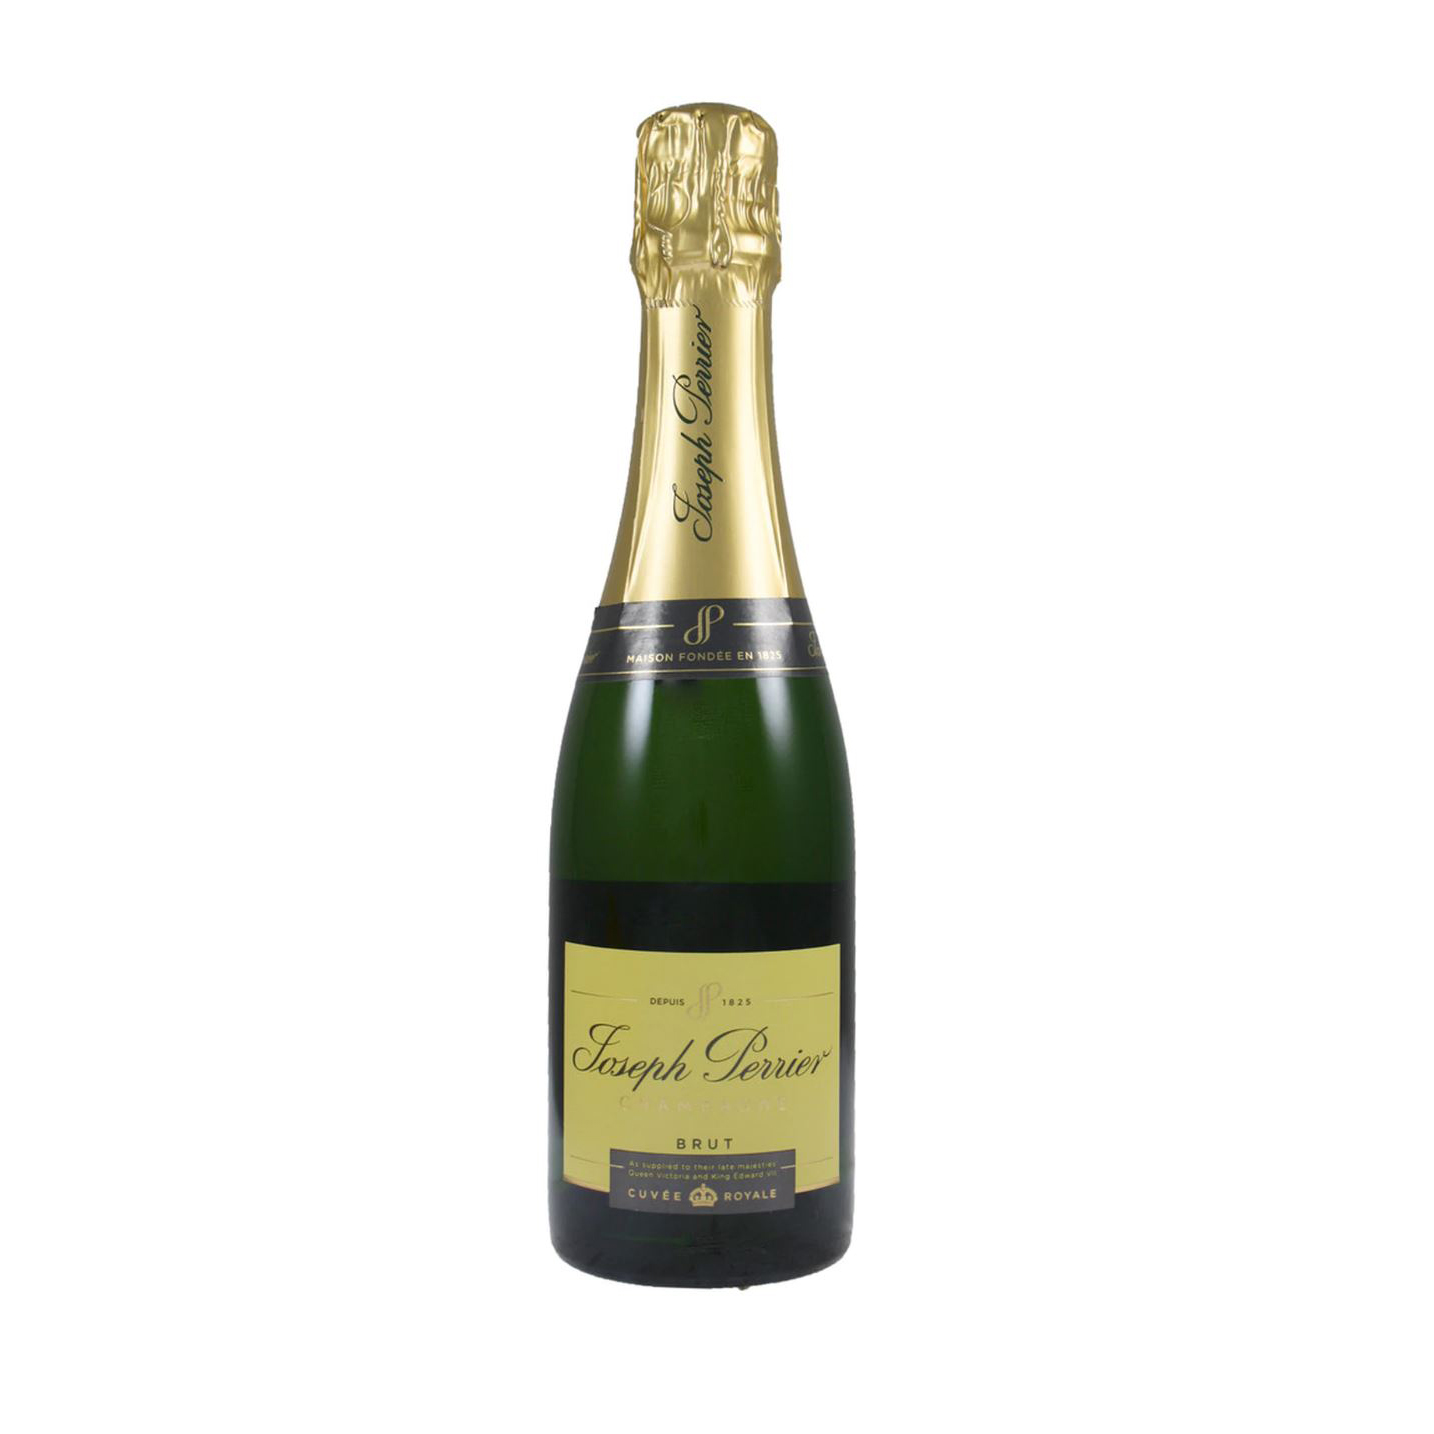 Jospeh Perrier Cuvee Royale Champagne 37.5cl